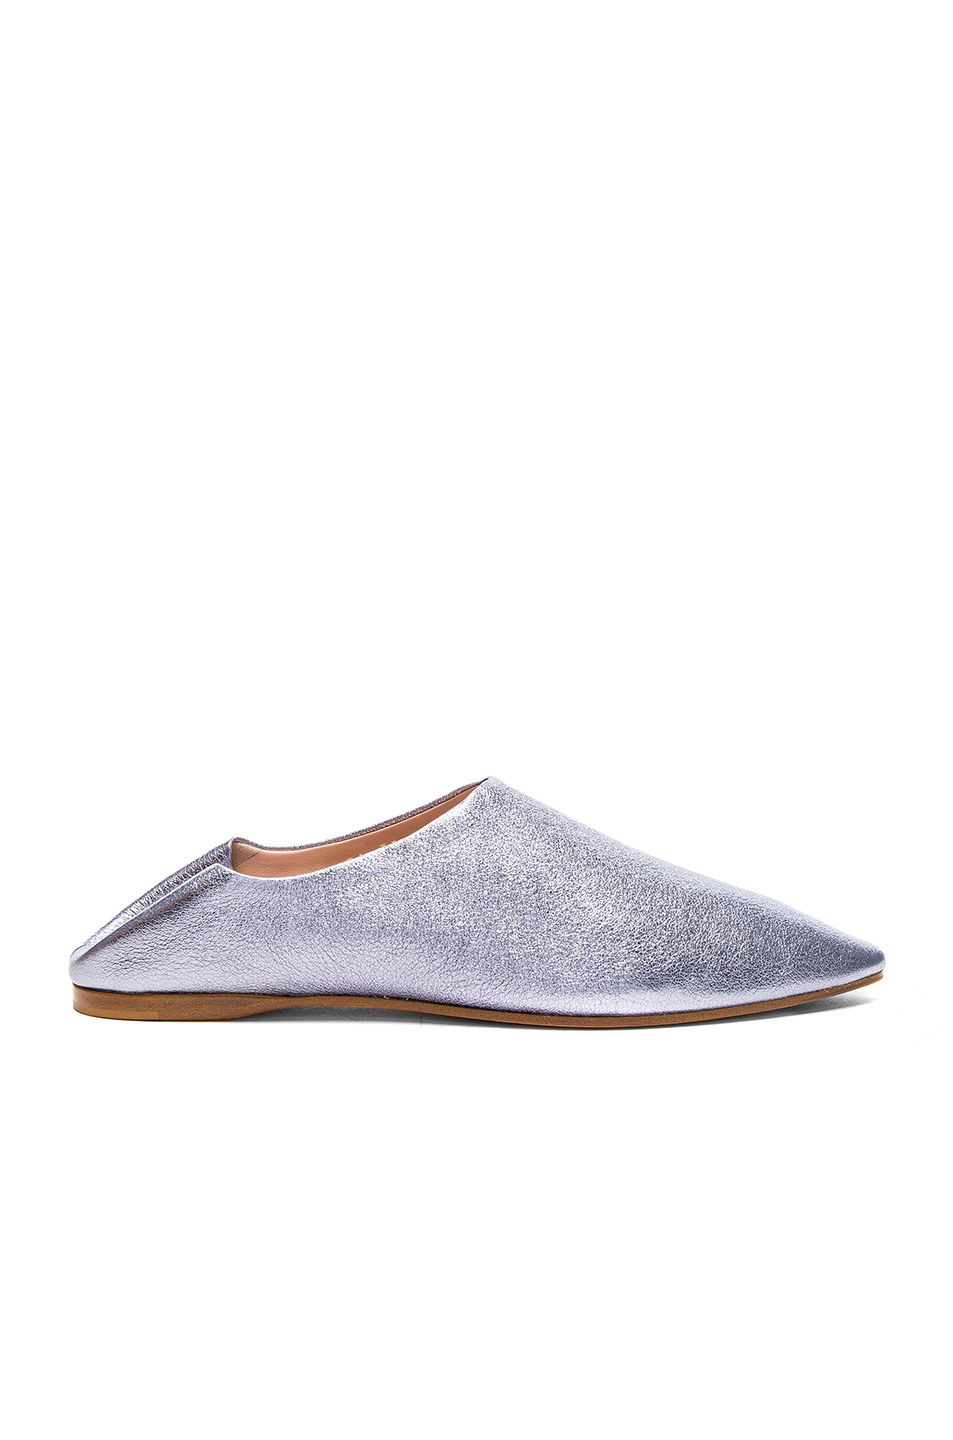 Acne Studios Leather Amina Space Flats in Metallics